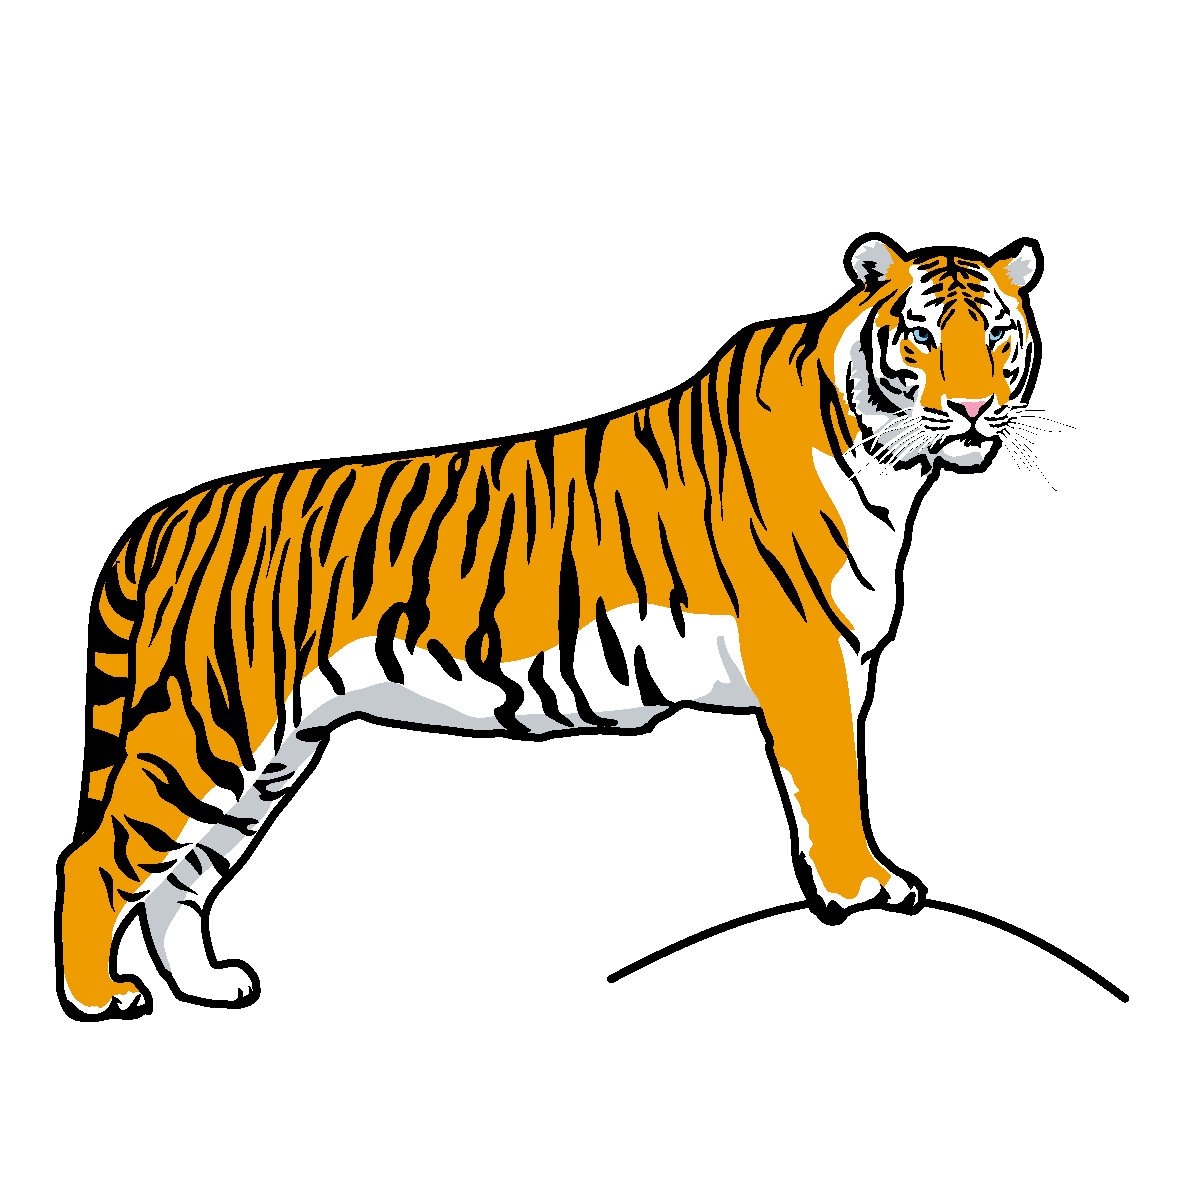 running tiger clipart black and white